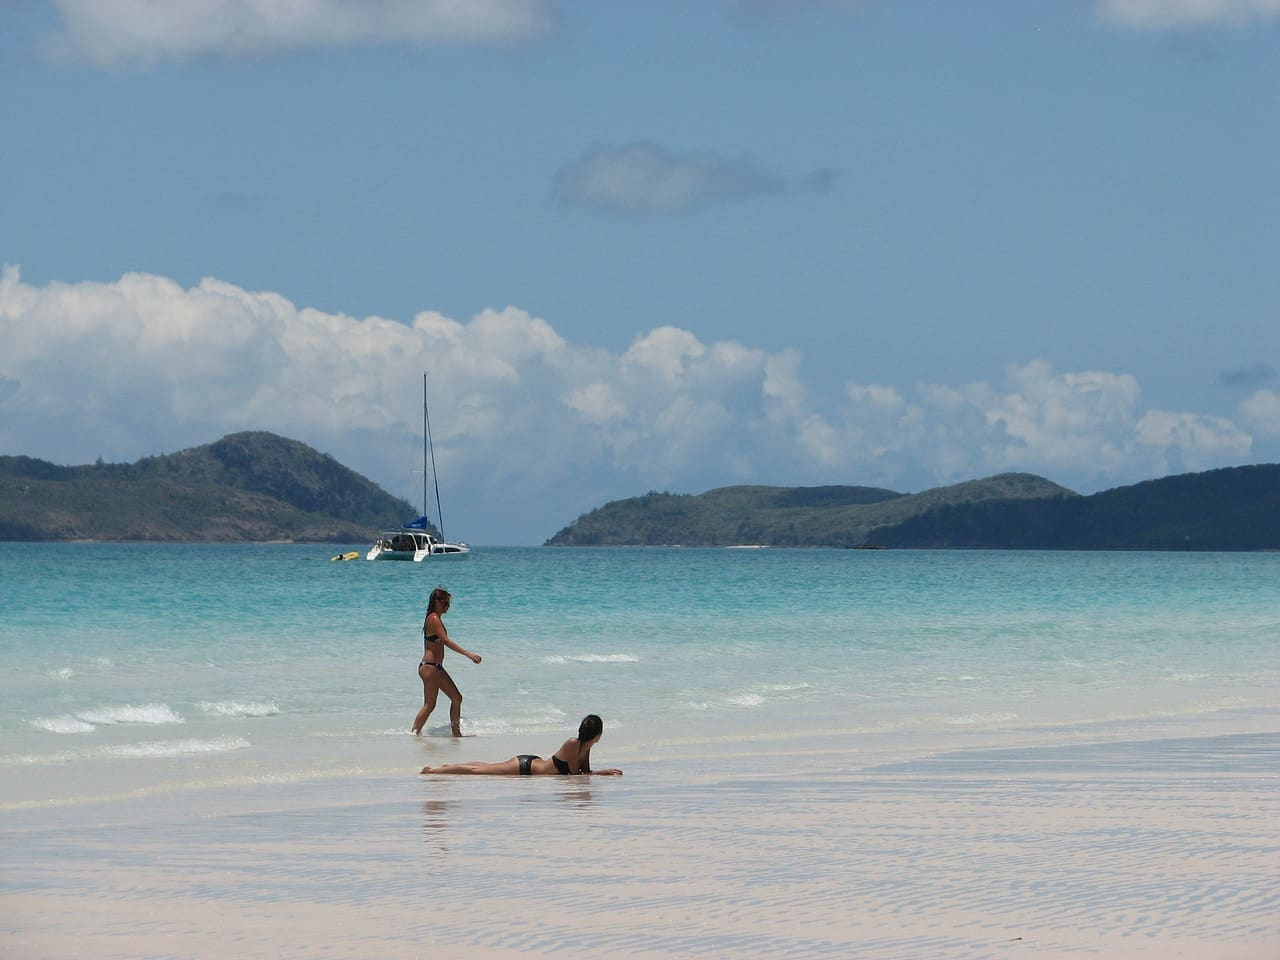 ilha de whitsundays